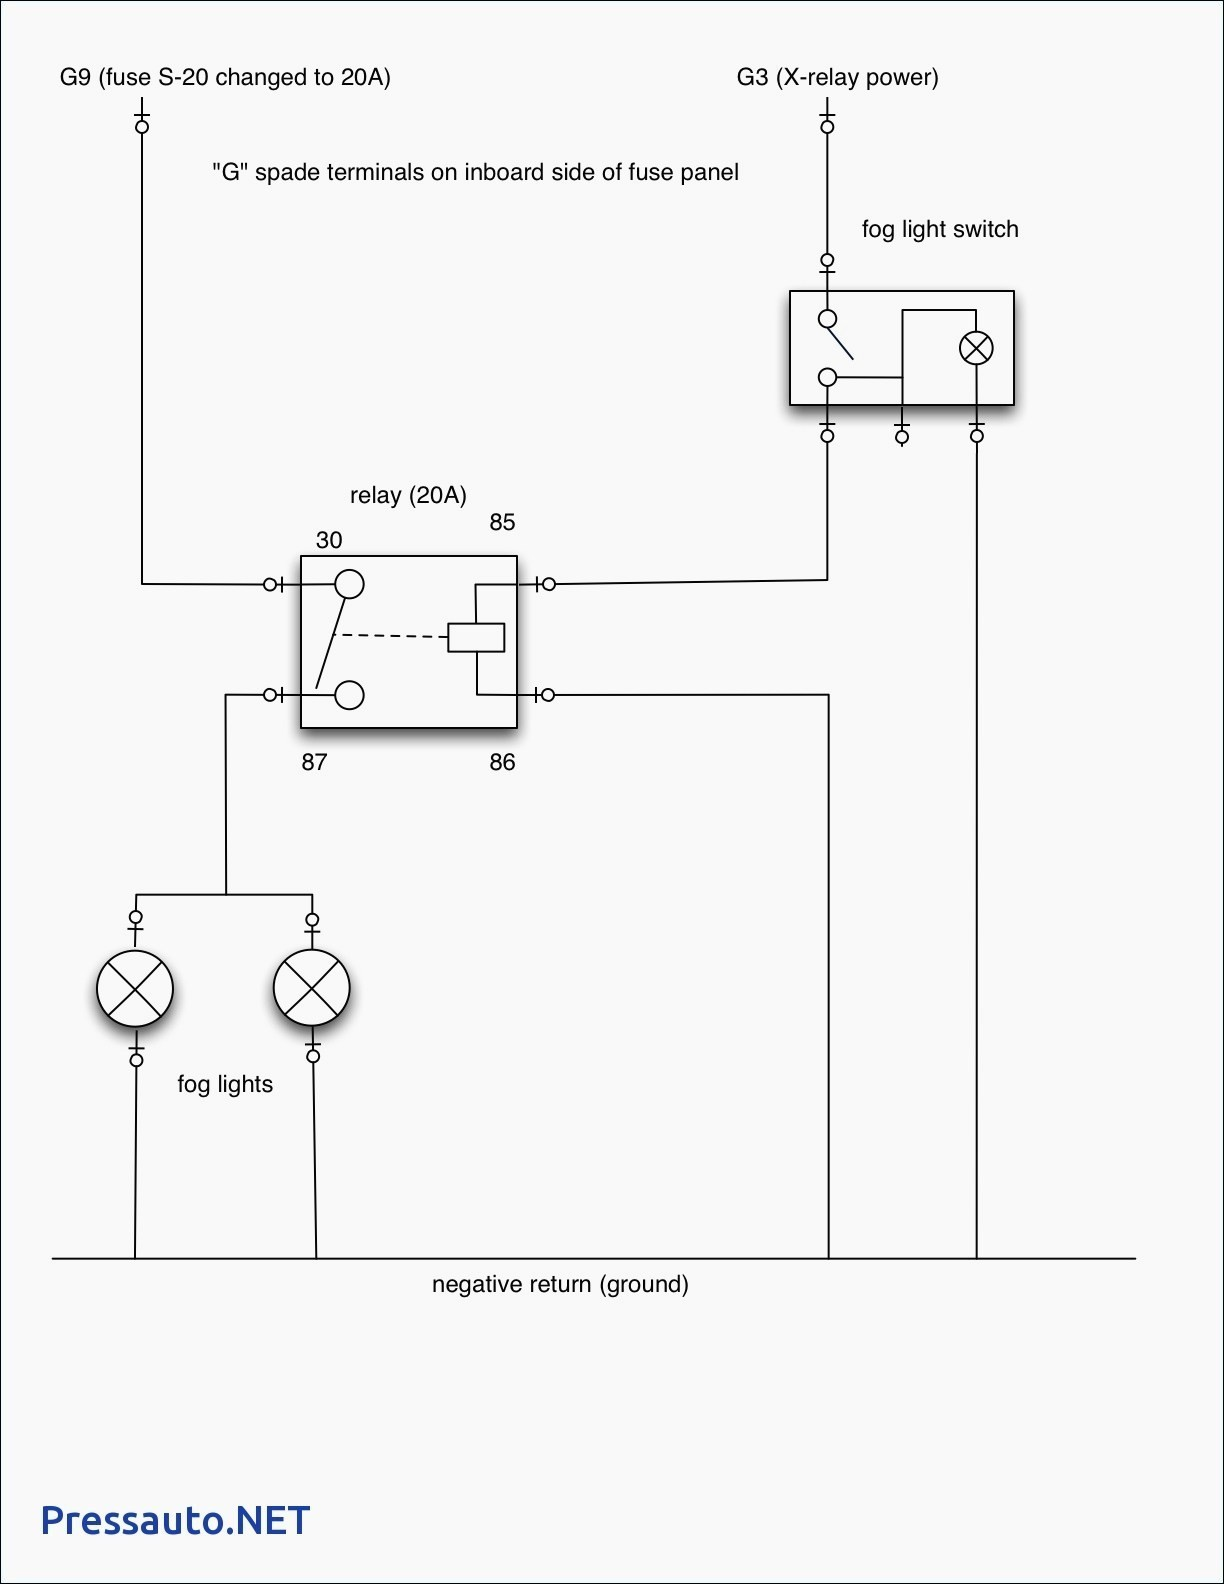 Fog Light Wiring Diagram No Relay New Wiring Diagram for A Relay for Fog Lights Save